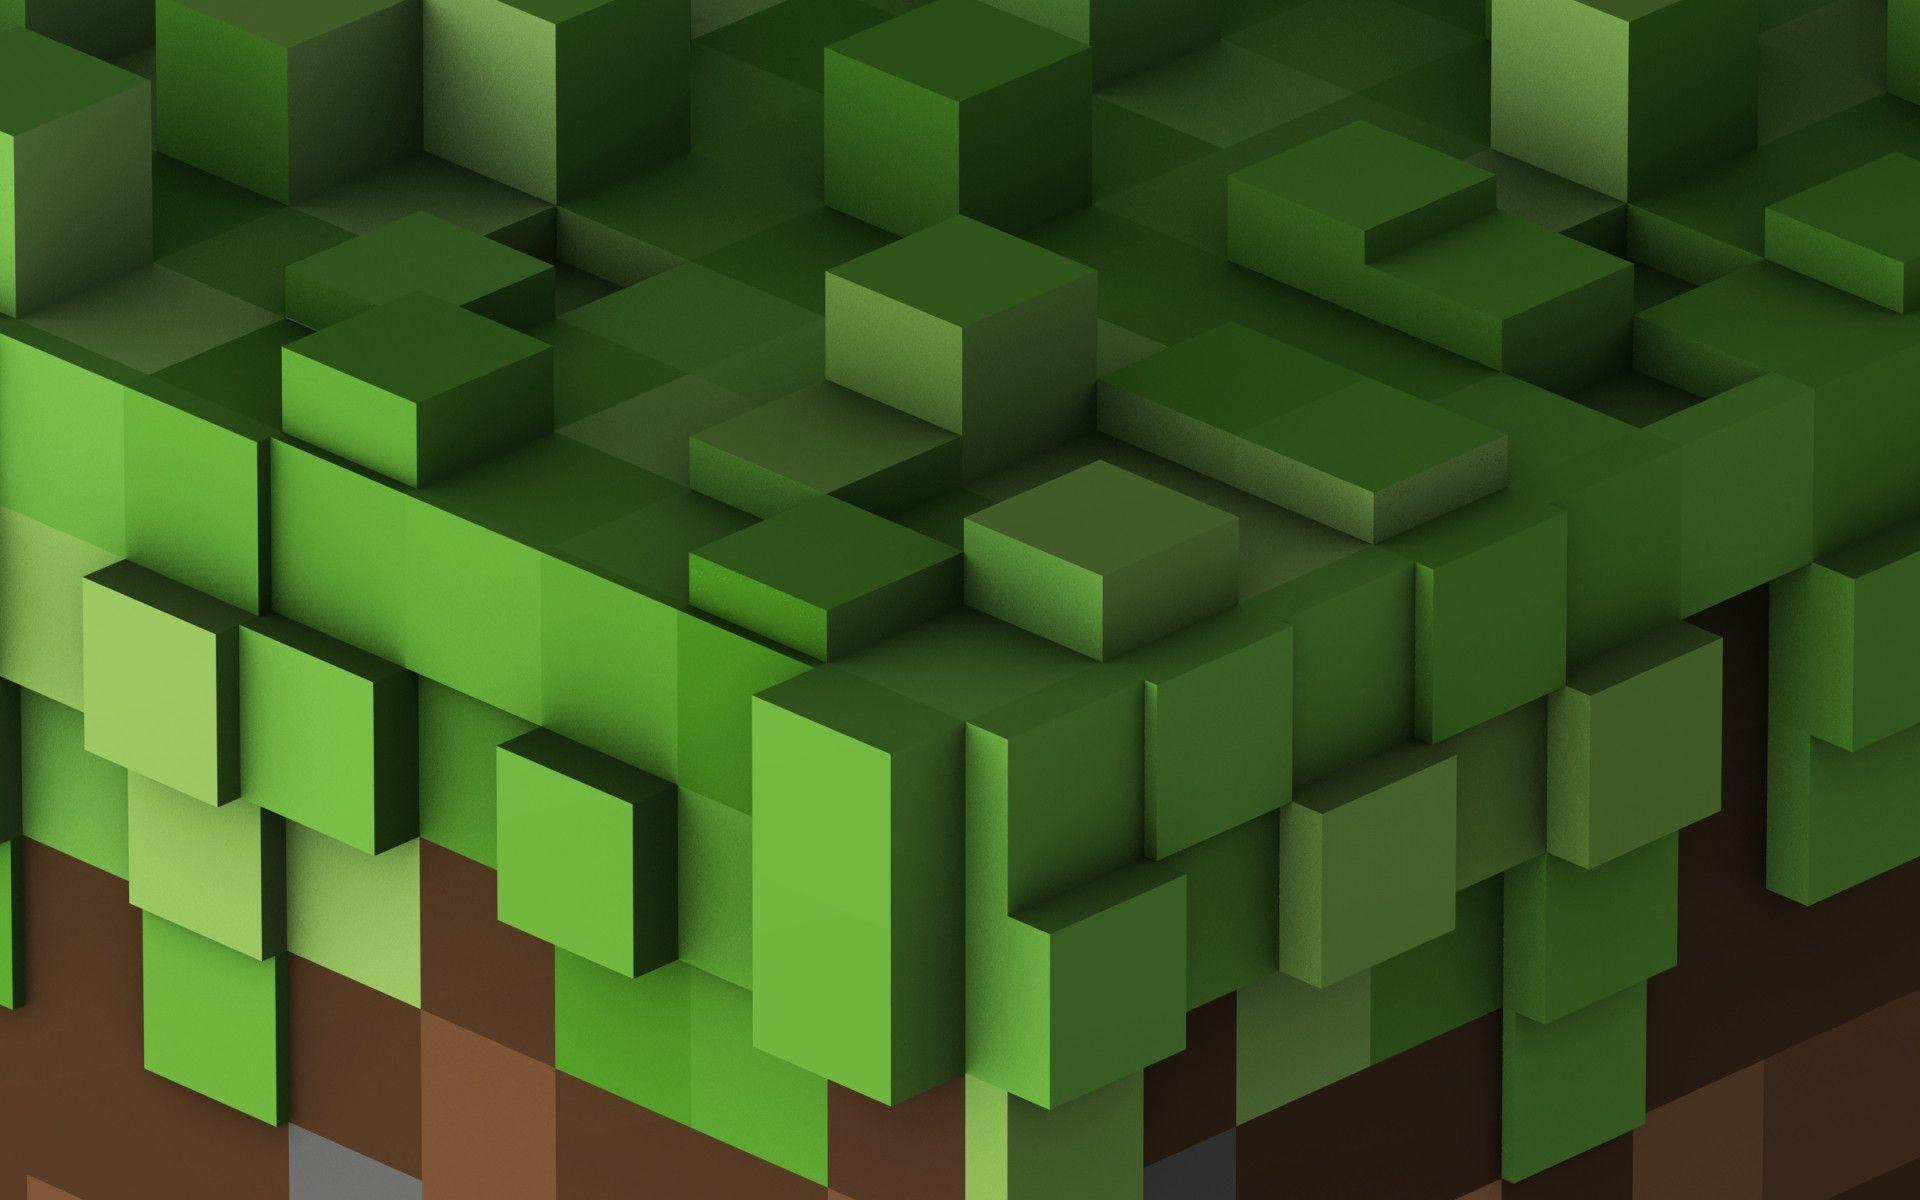 minecraft background Incep.imagine ex.co